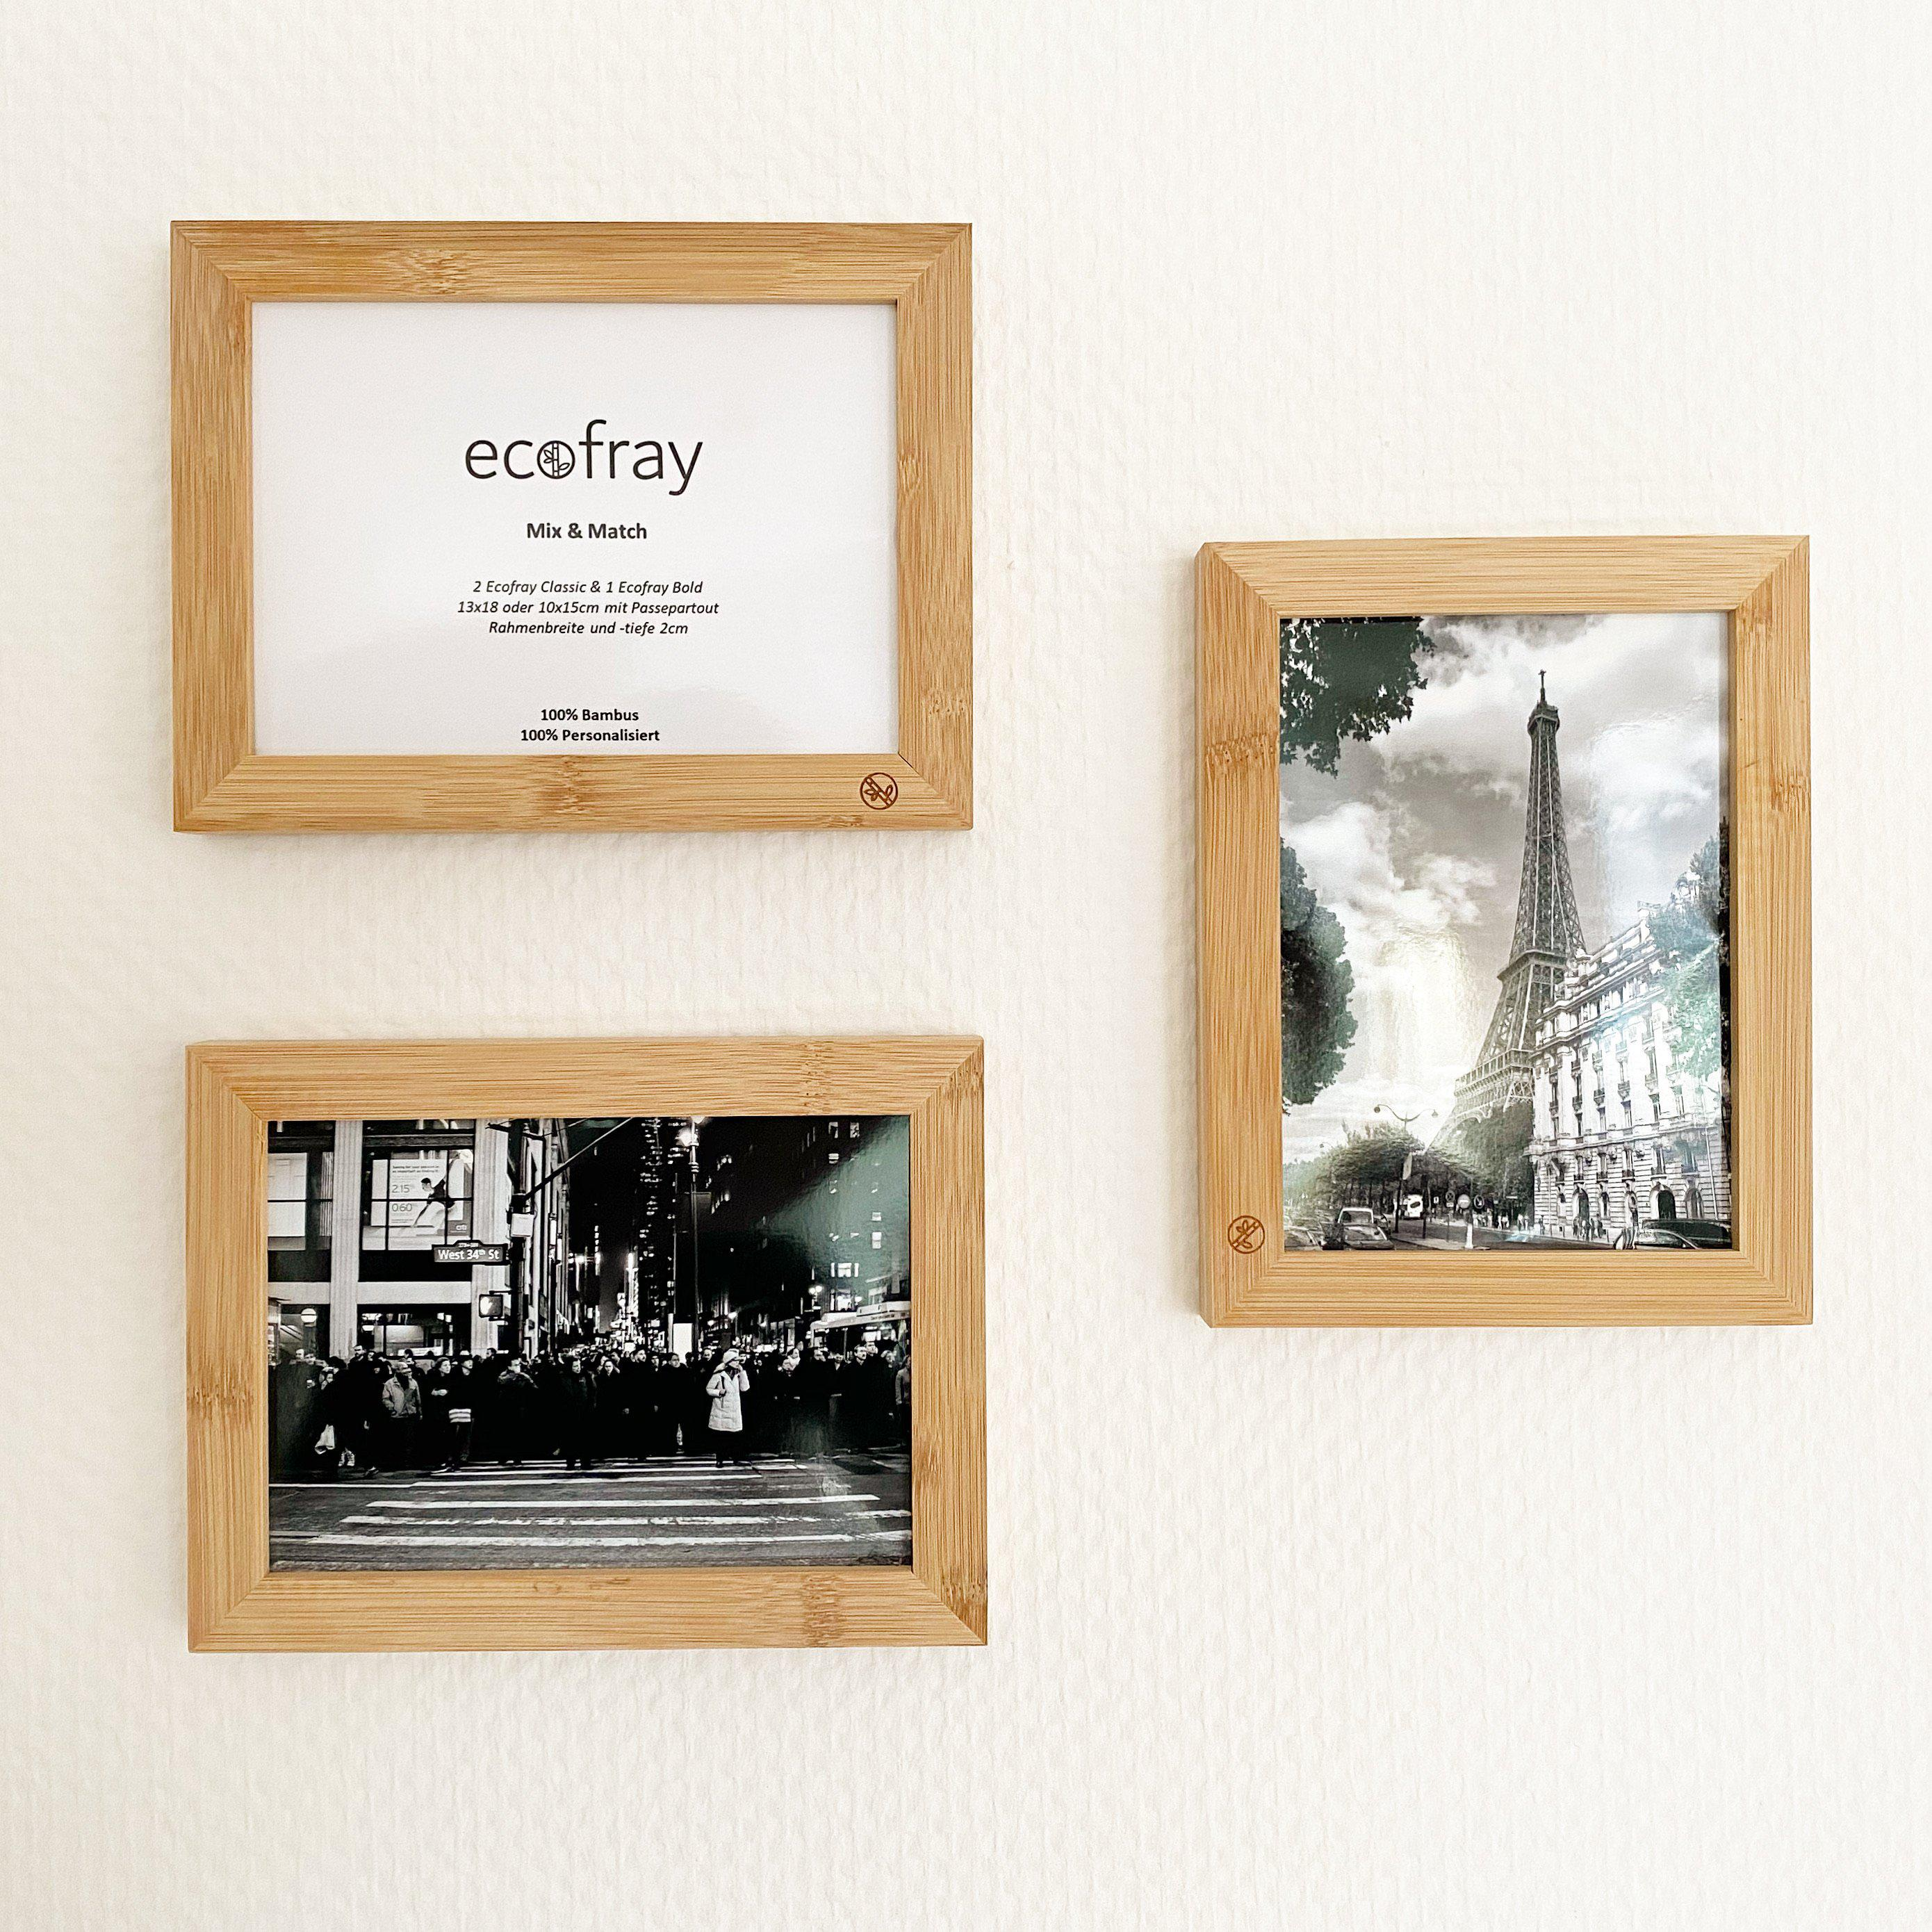 Ecofray Mix & Match